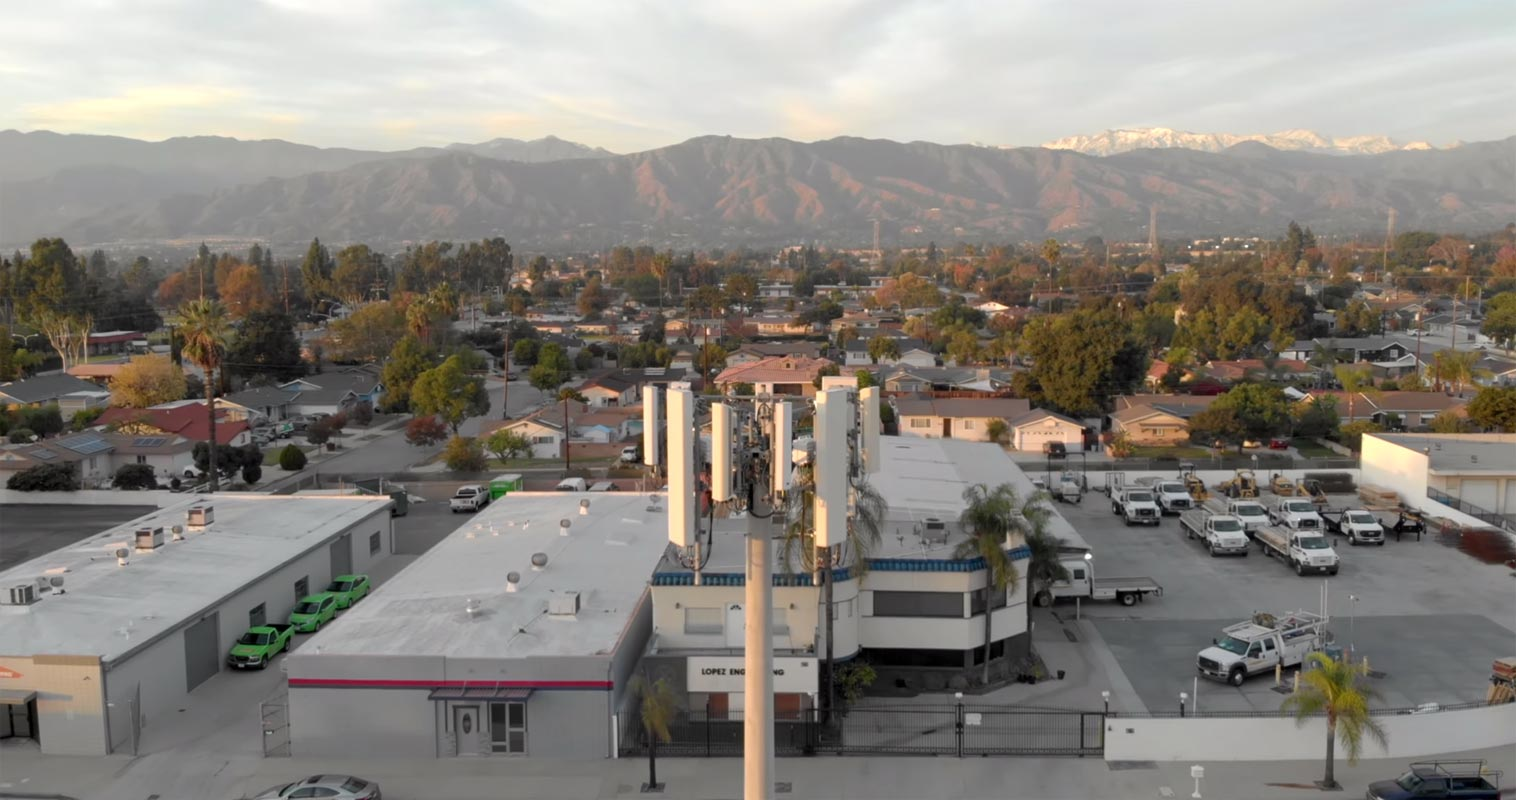 T-Mobile 5G Towers in City